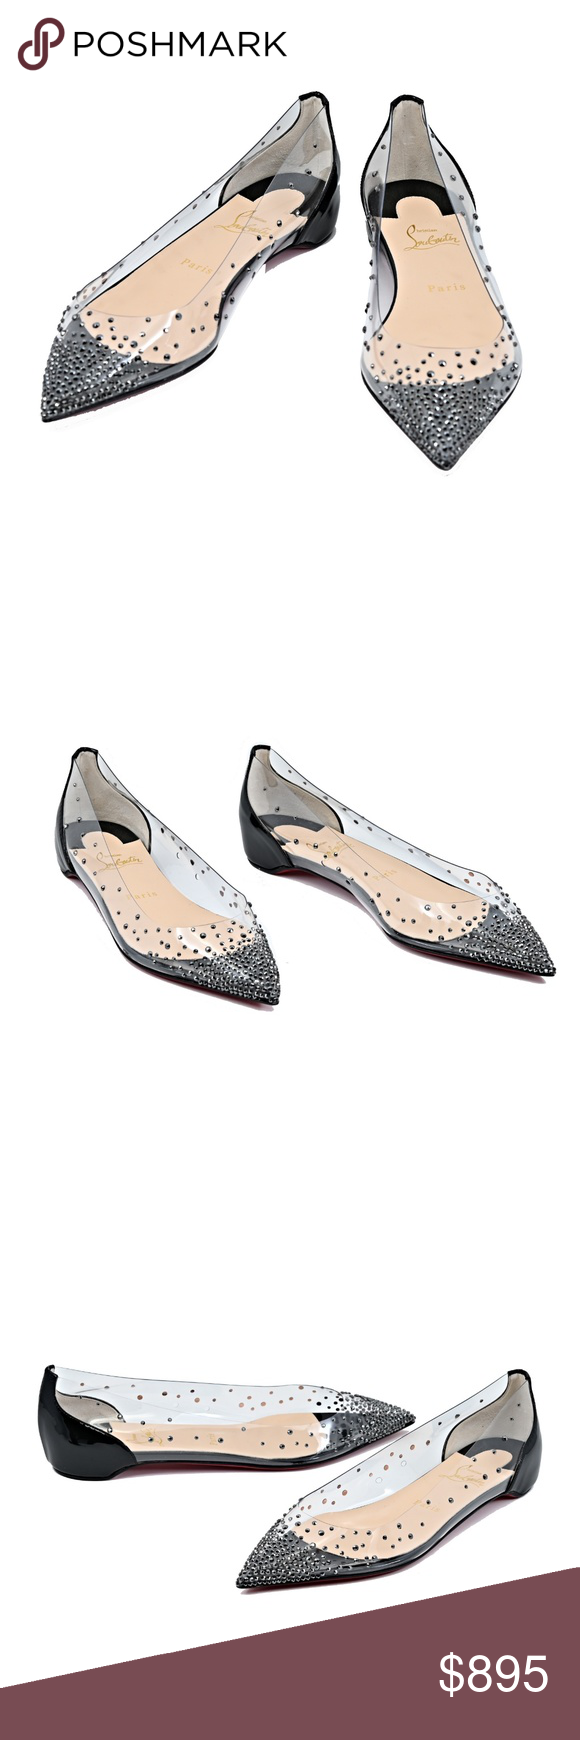 317ea219784 Christian Louboutin Degrastrass Red Sole Flats SAME DAY SHIPPING (ALL MY  ITEMS ARE IN STOCK